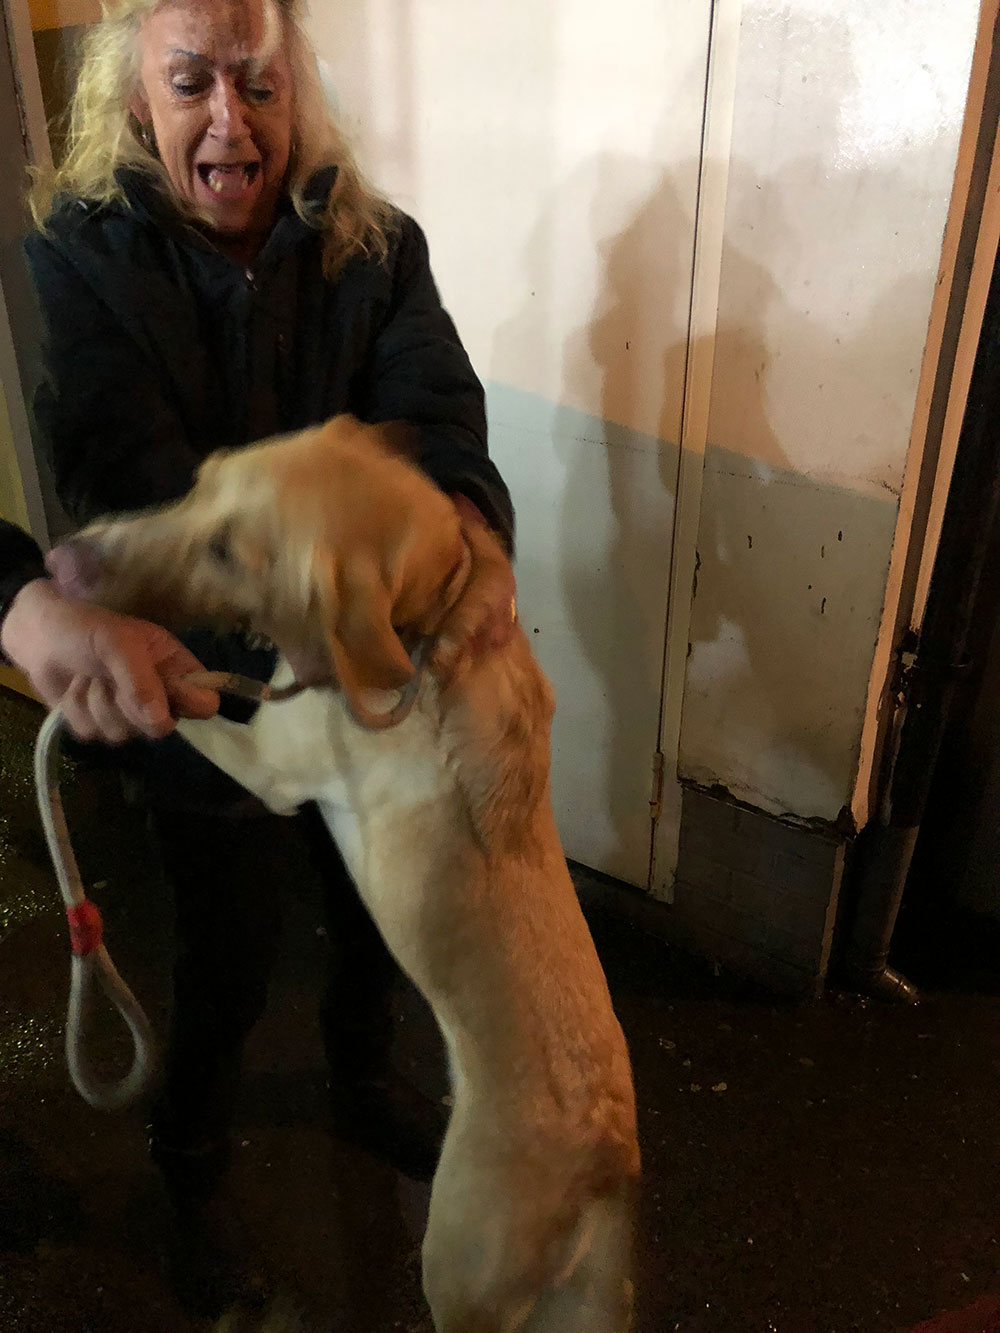 A lively reunion with Zaria as Scooby leaps around